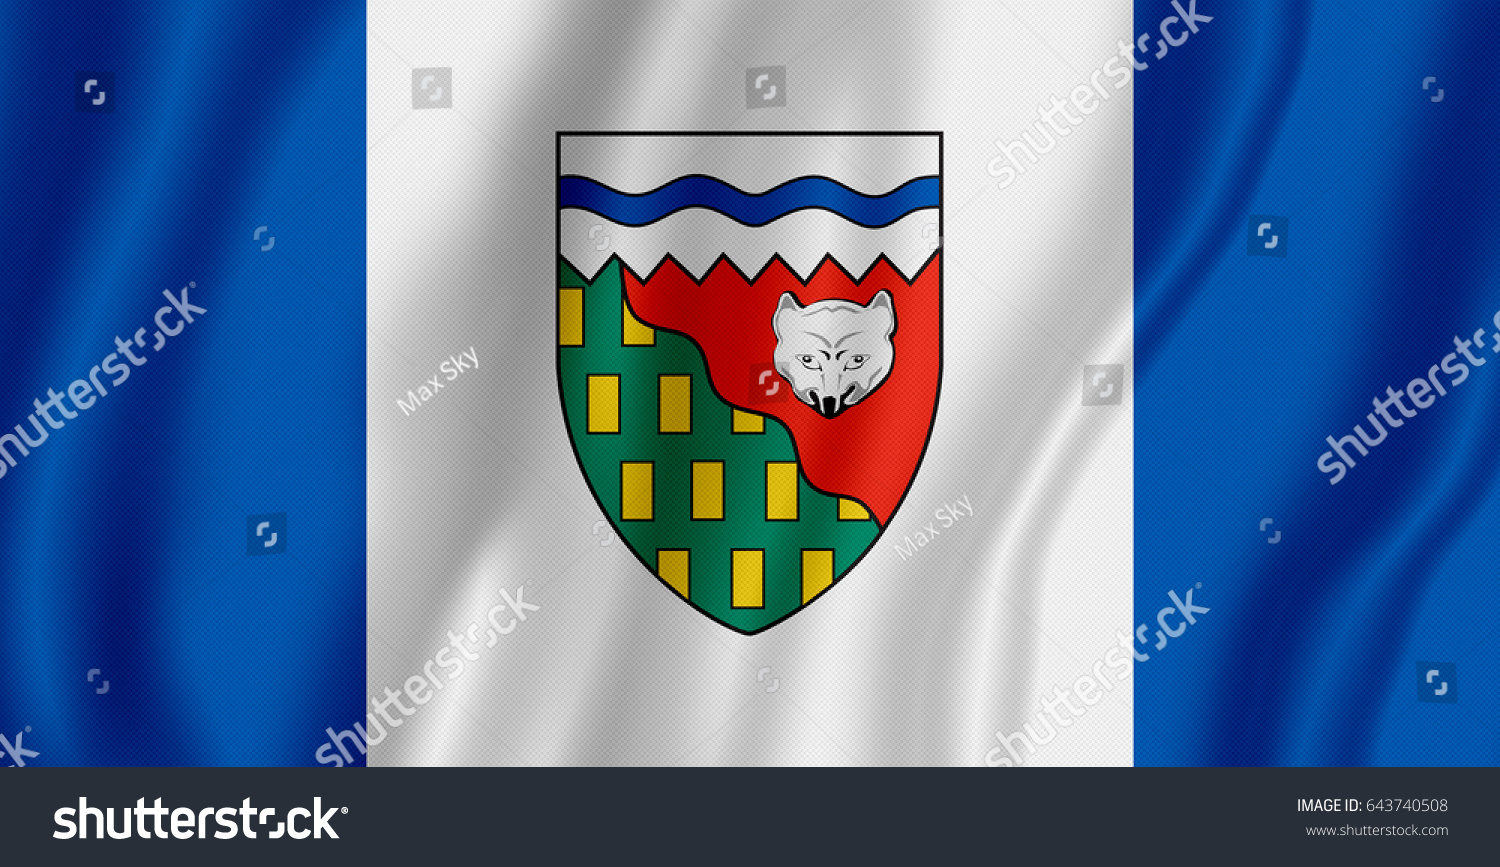 Flag northwest territories canada stock illustration 643740508 flag of northwest territories canada biocorpaavc Choice Image